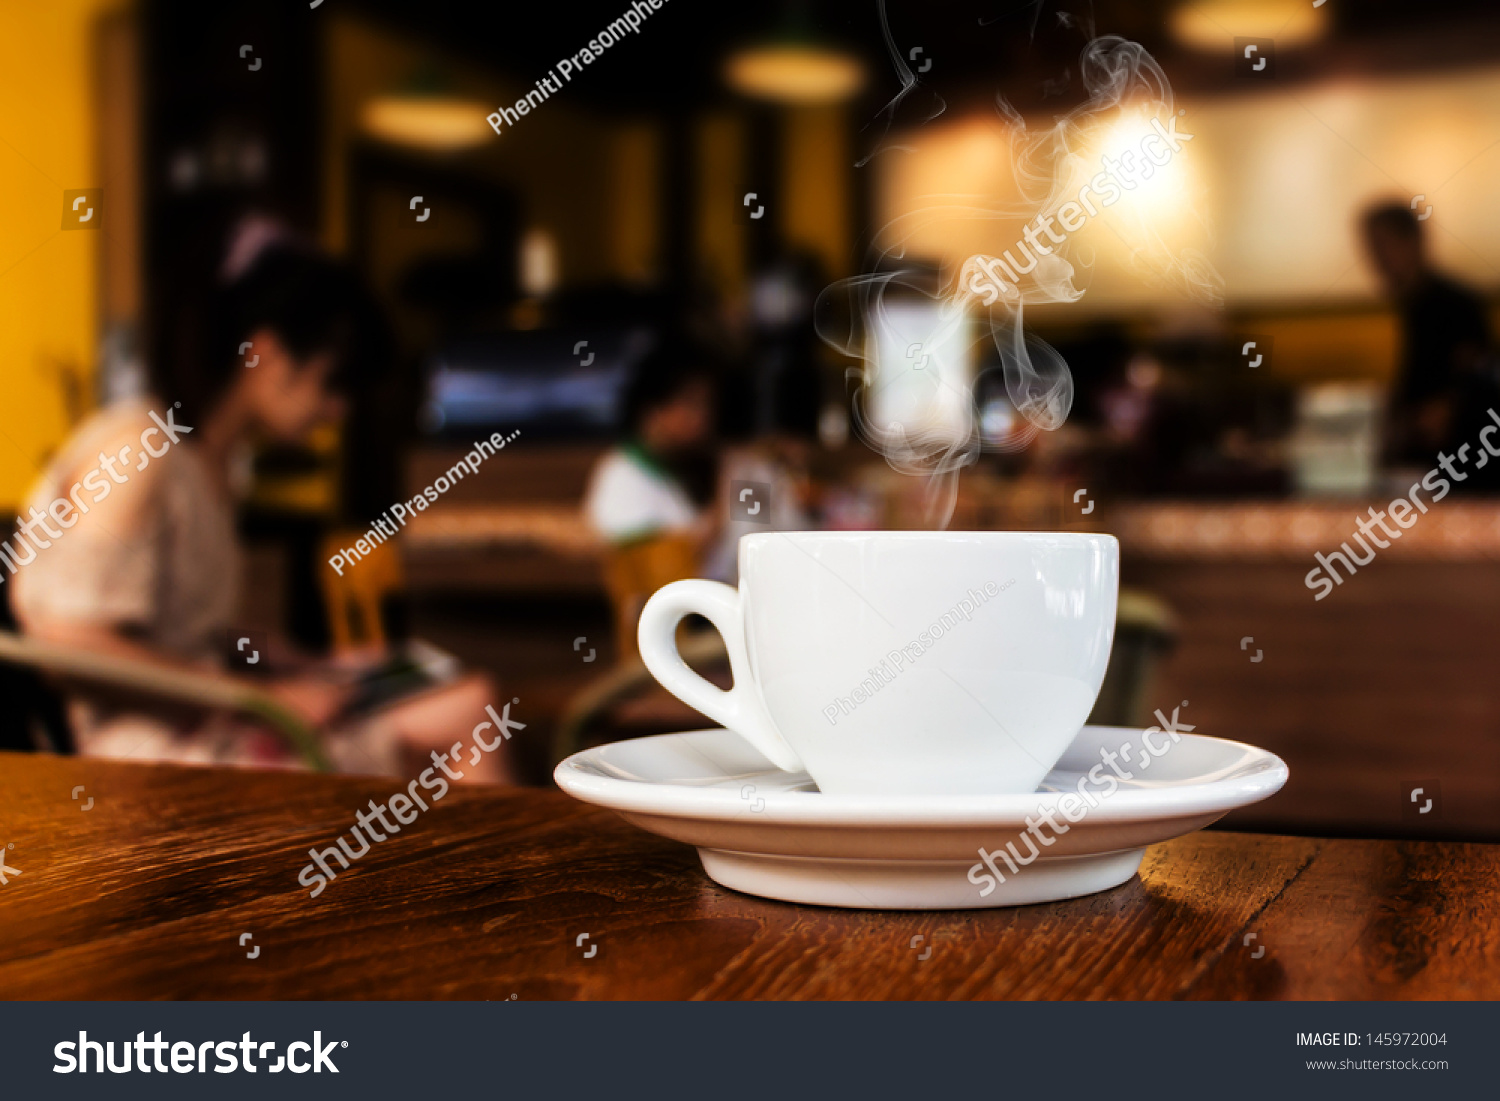 Cup coffee on table cafe stock photo 145972004 shutterstock cup of coffee on table in cafe geotapseo Gallery